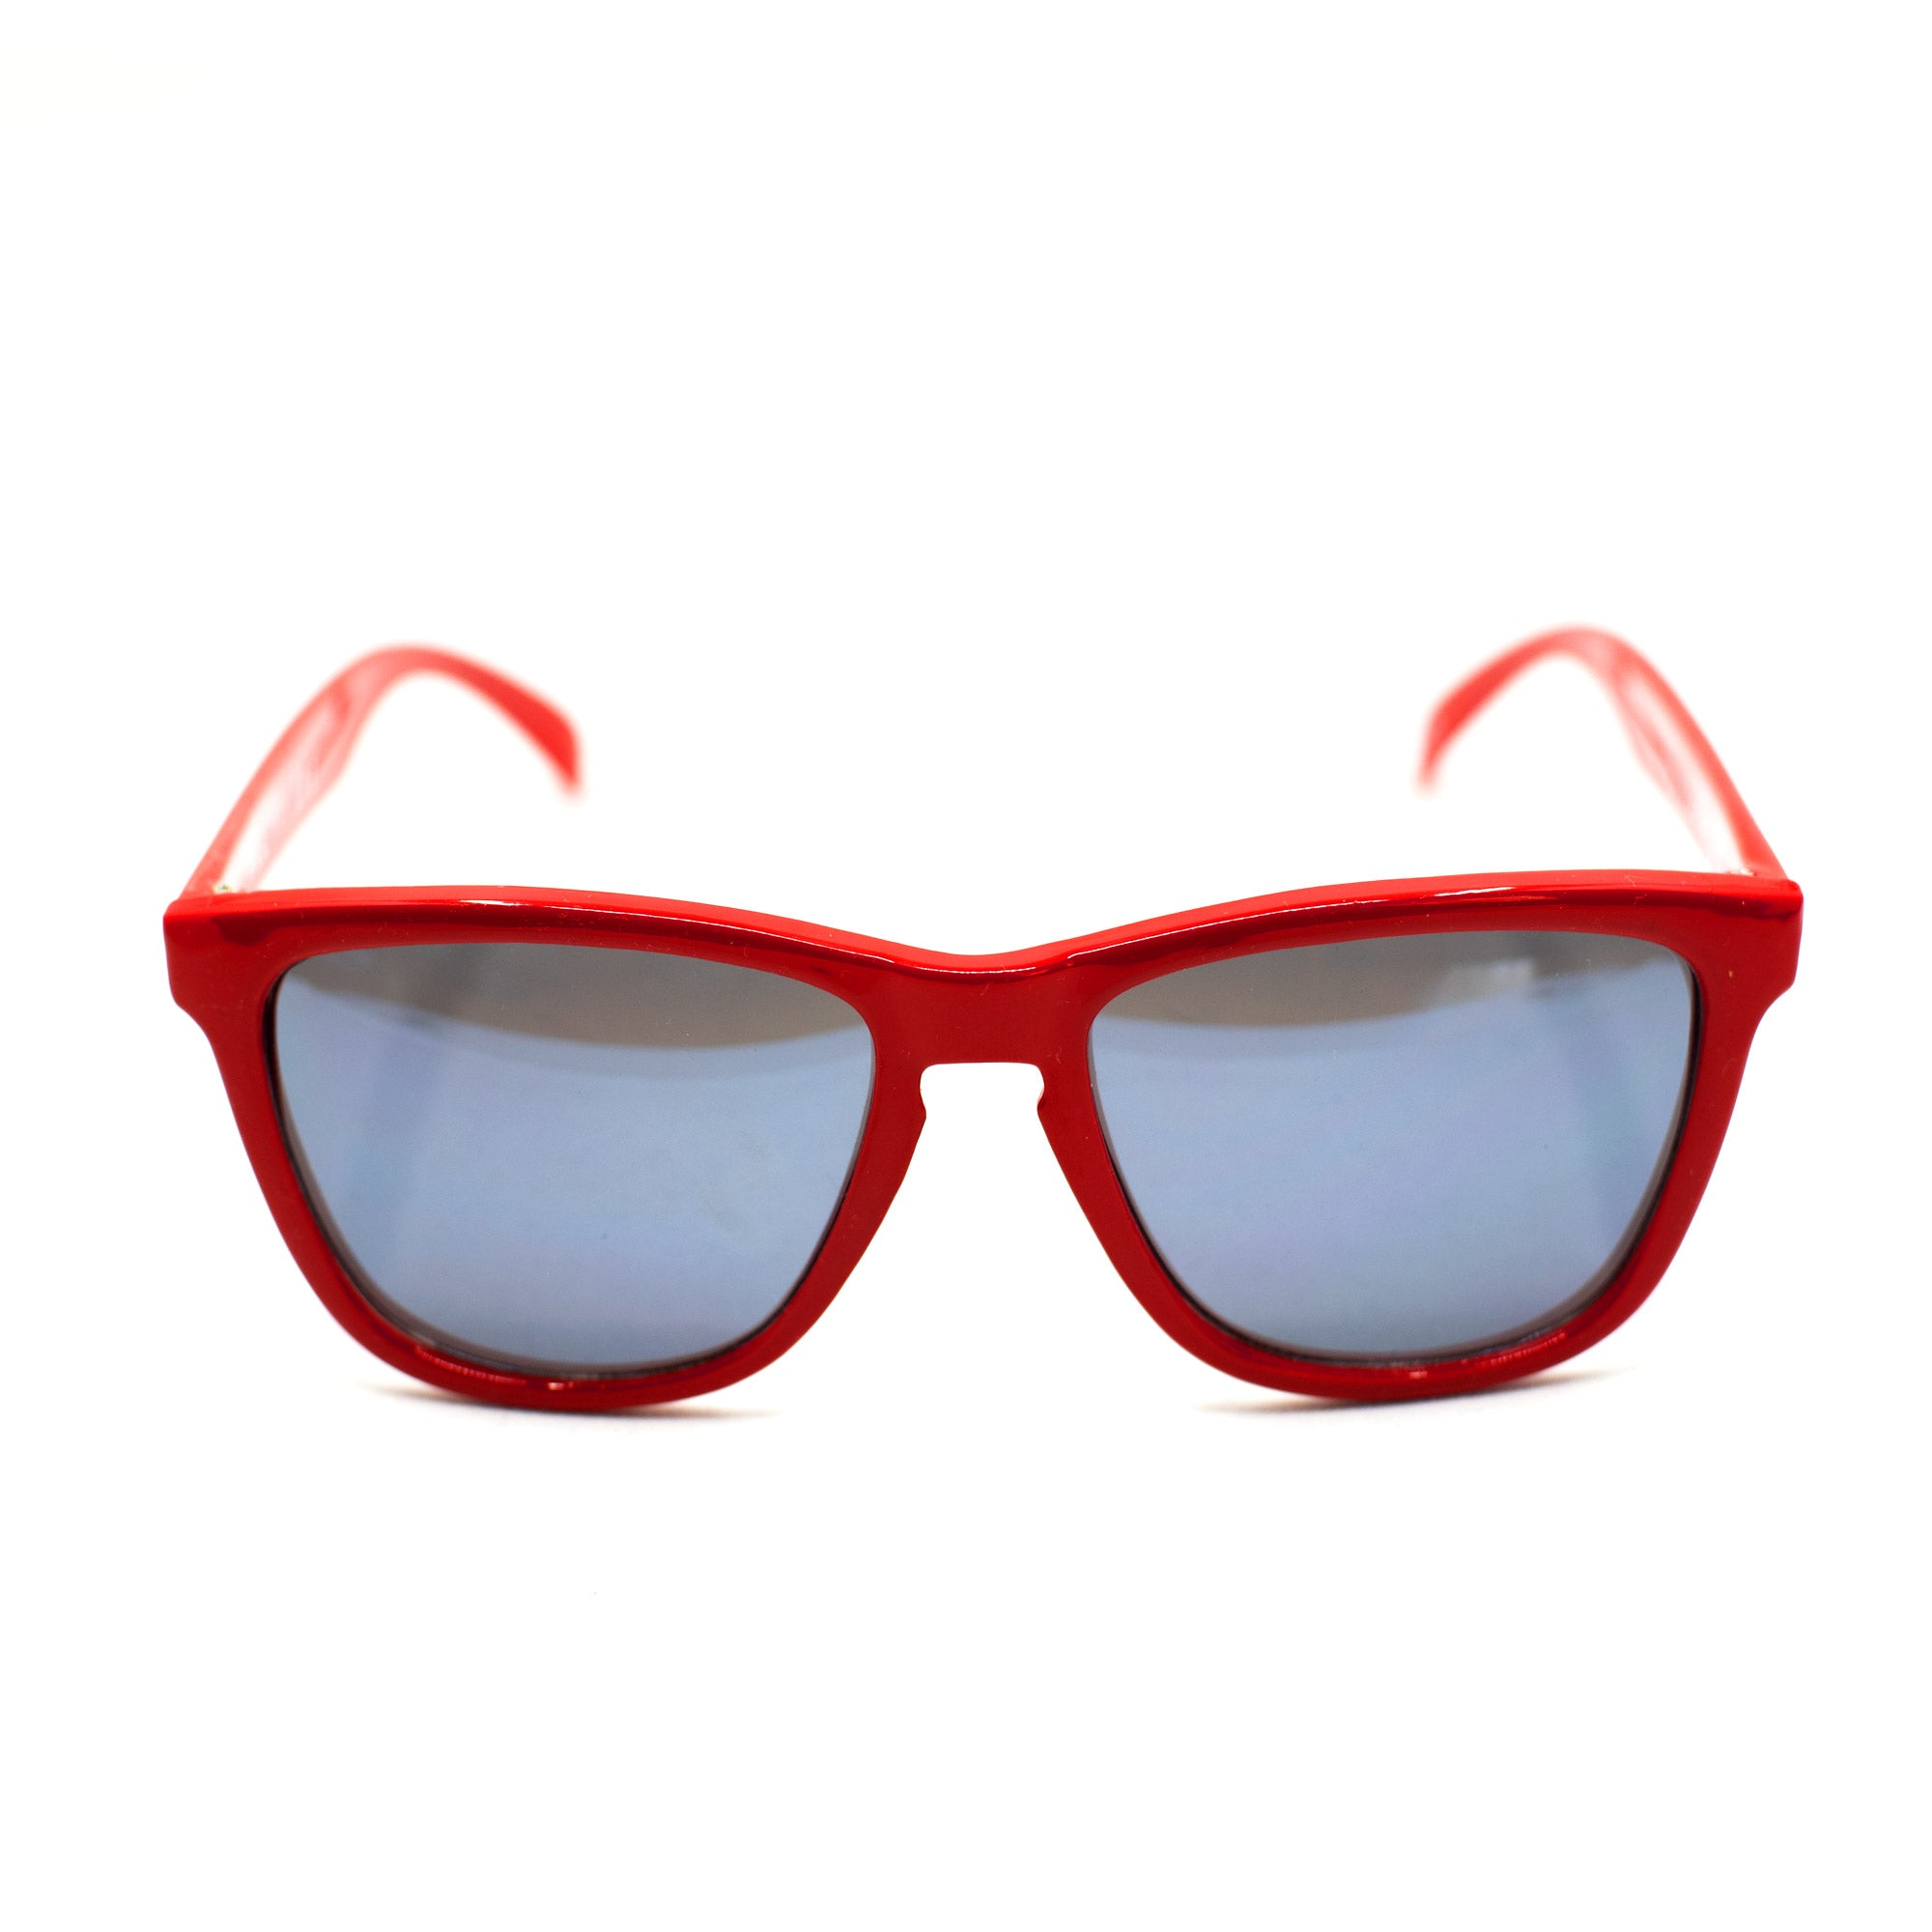 Toronto FC All For One Sunglasses - RED